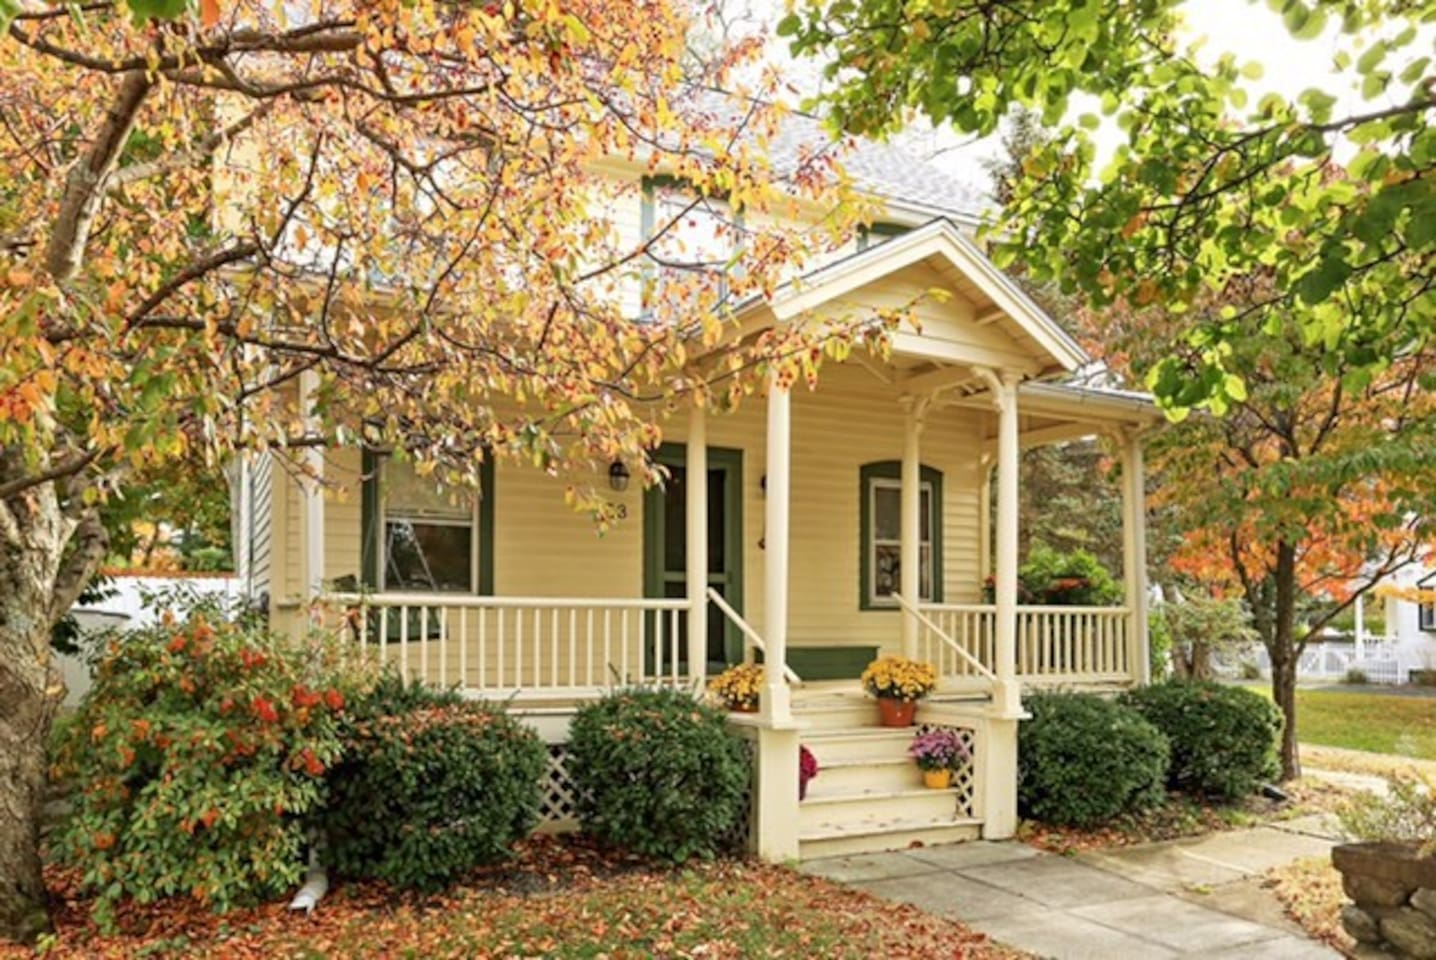 charming 3BR house, minutes walk to hiking trails and close to Main st!